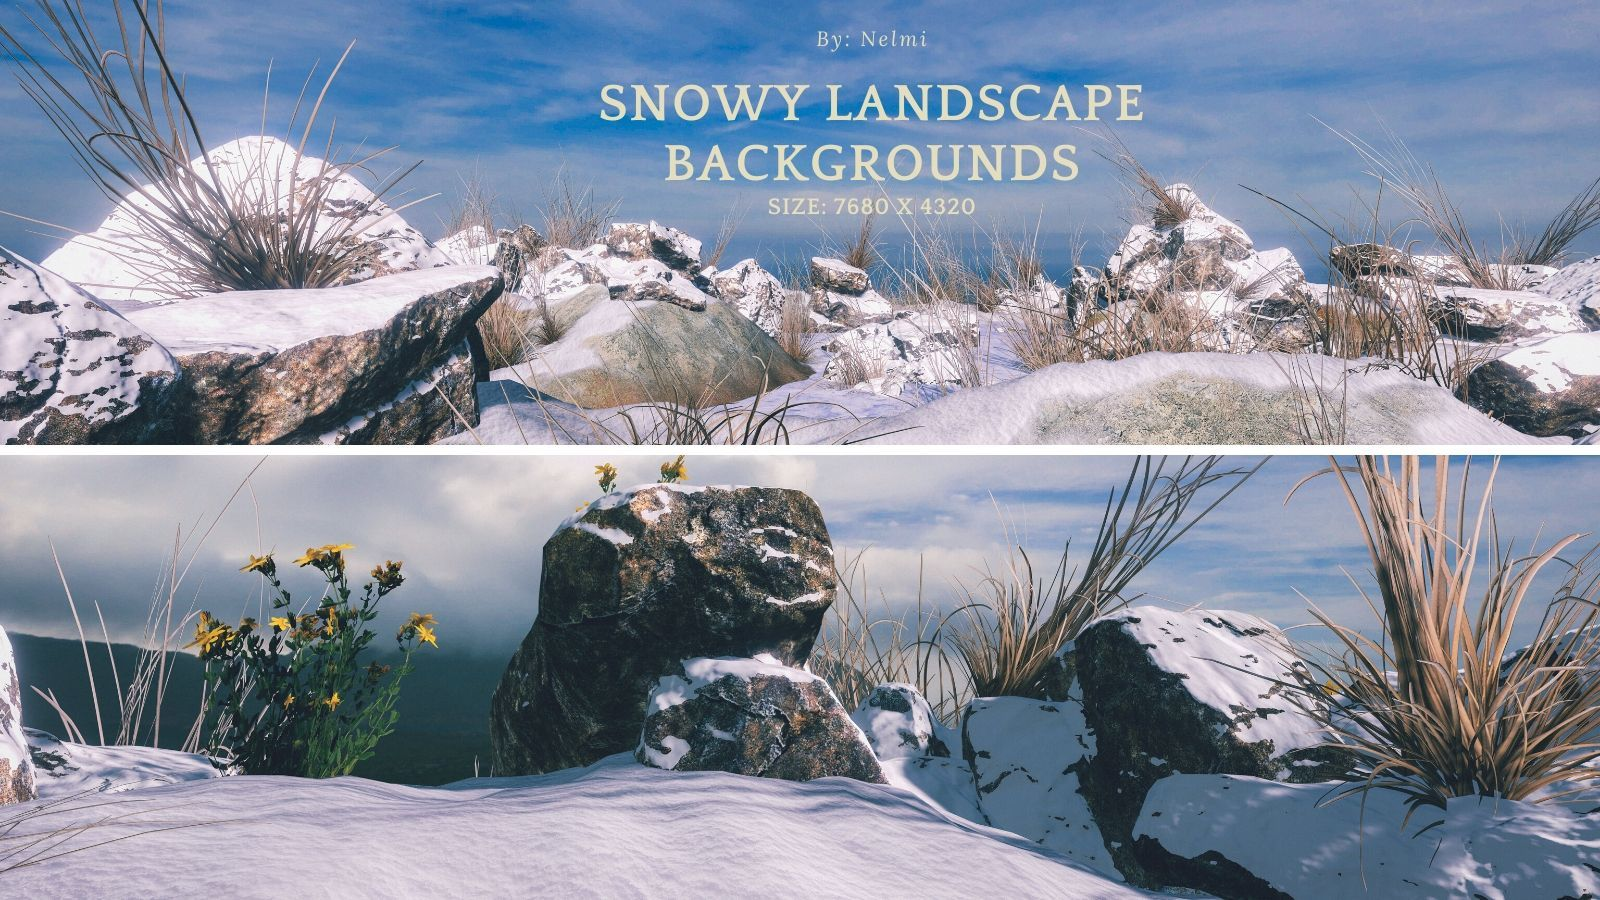 12 Snowy Landscape Backgrounds by nelmi